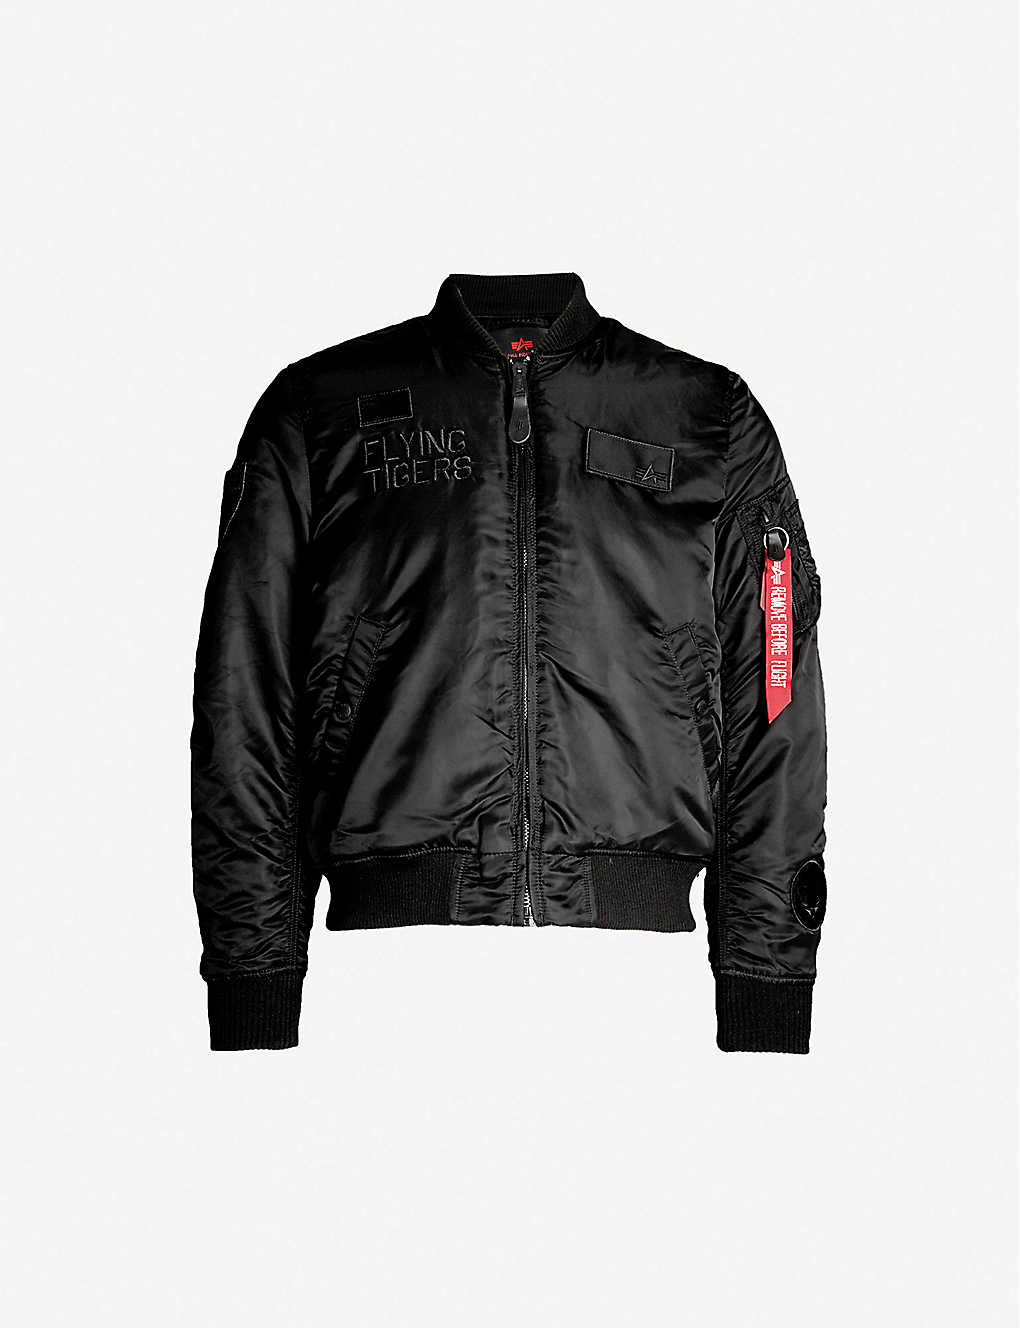 078c8fd66 Flying tigers padded bomber jacket